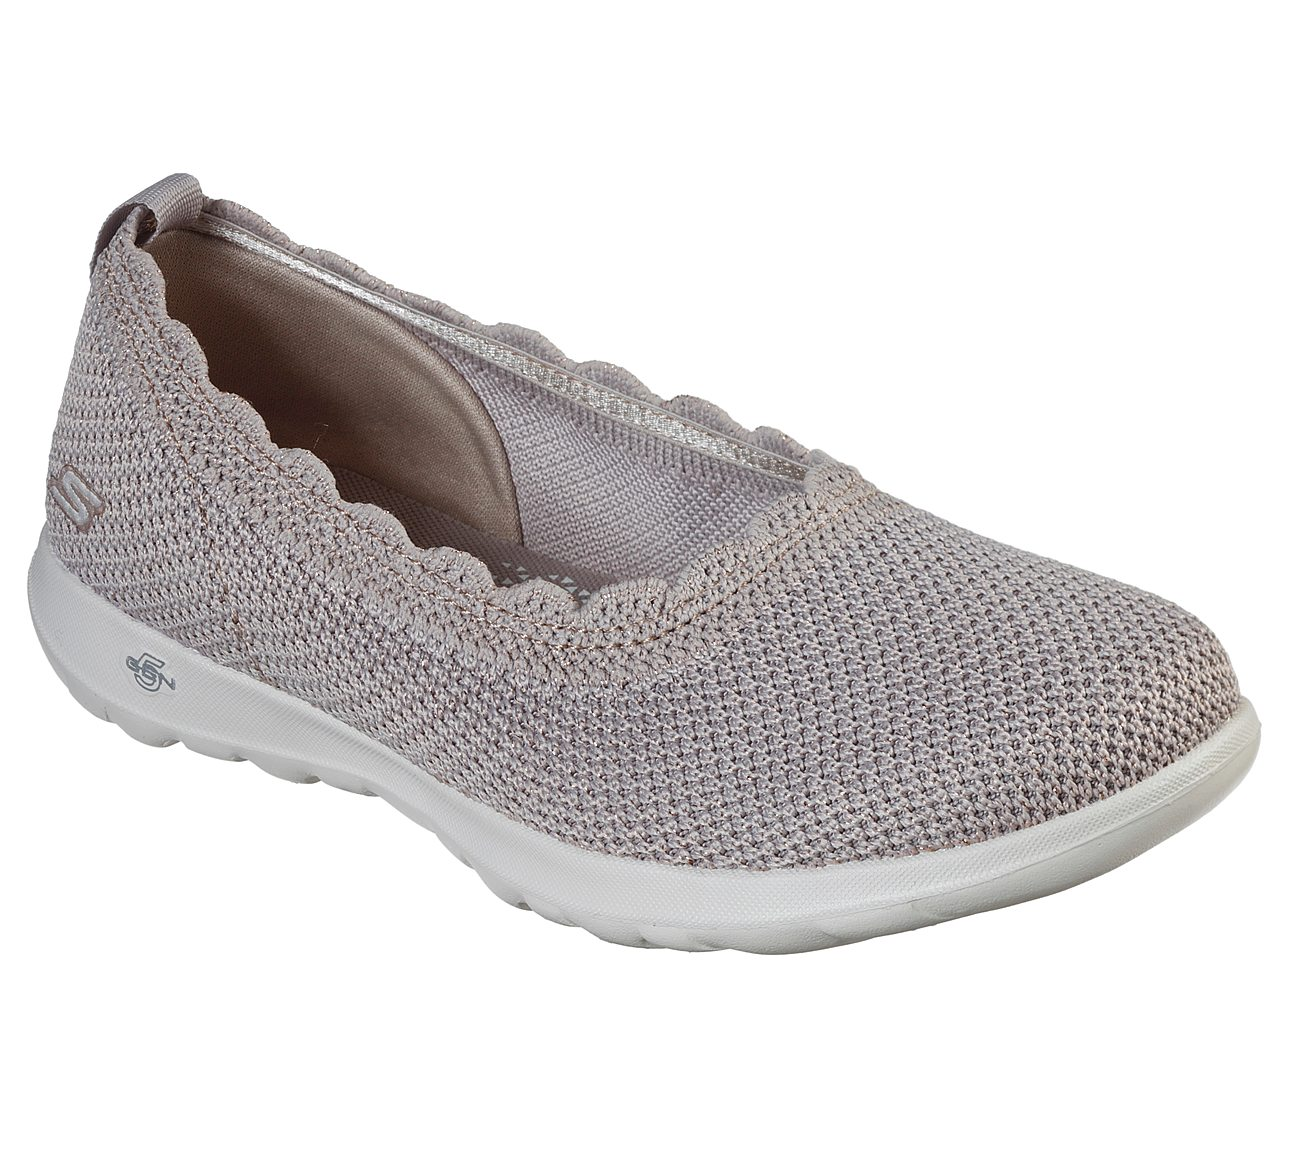 new cheap big selection special price for Skechers GOwalk Lite - Glitz